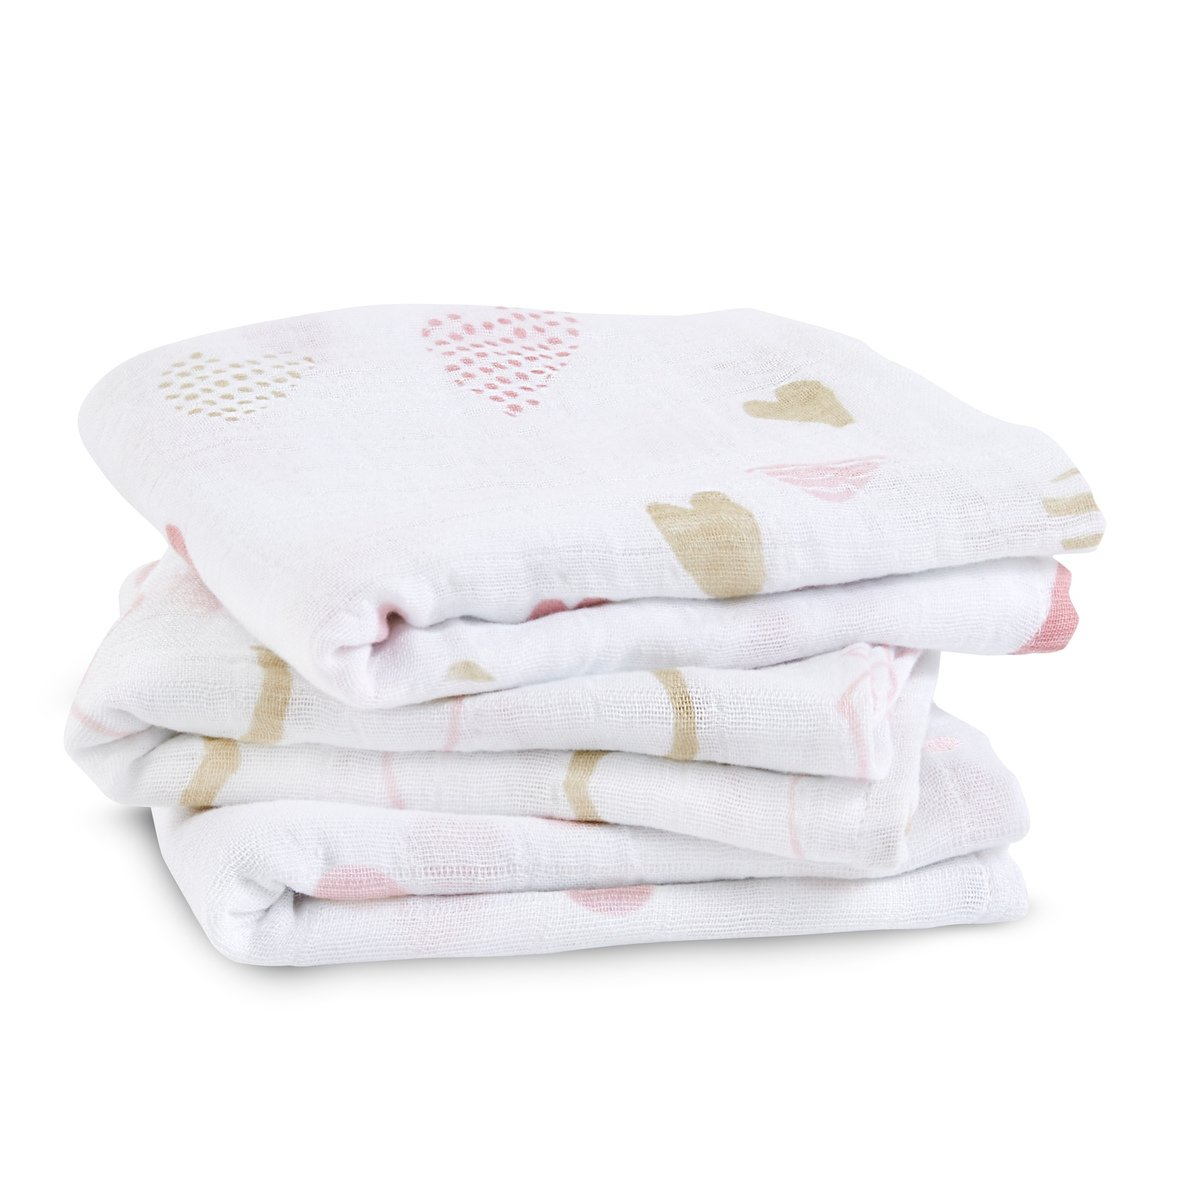 aden + anais Classic Musy Muslin Squares (Pack of 3)Heartbreaker